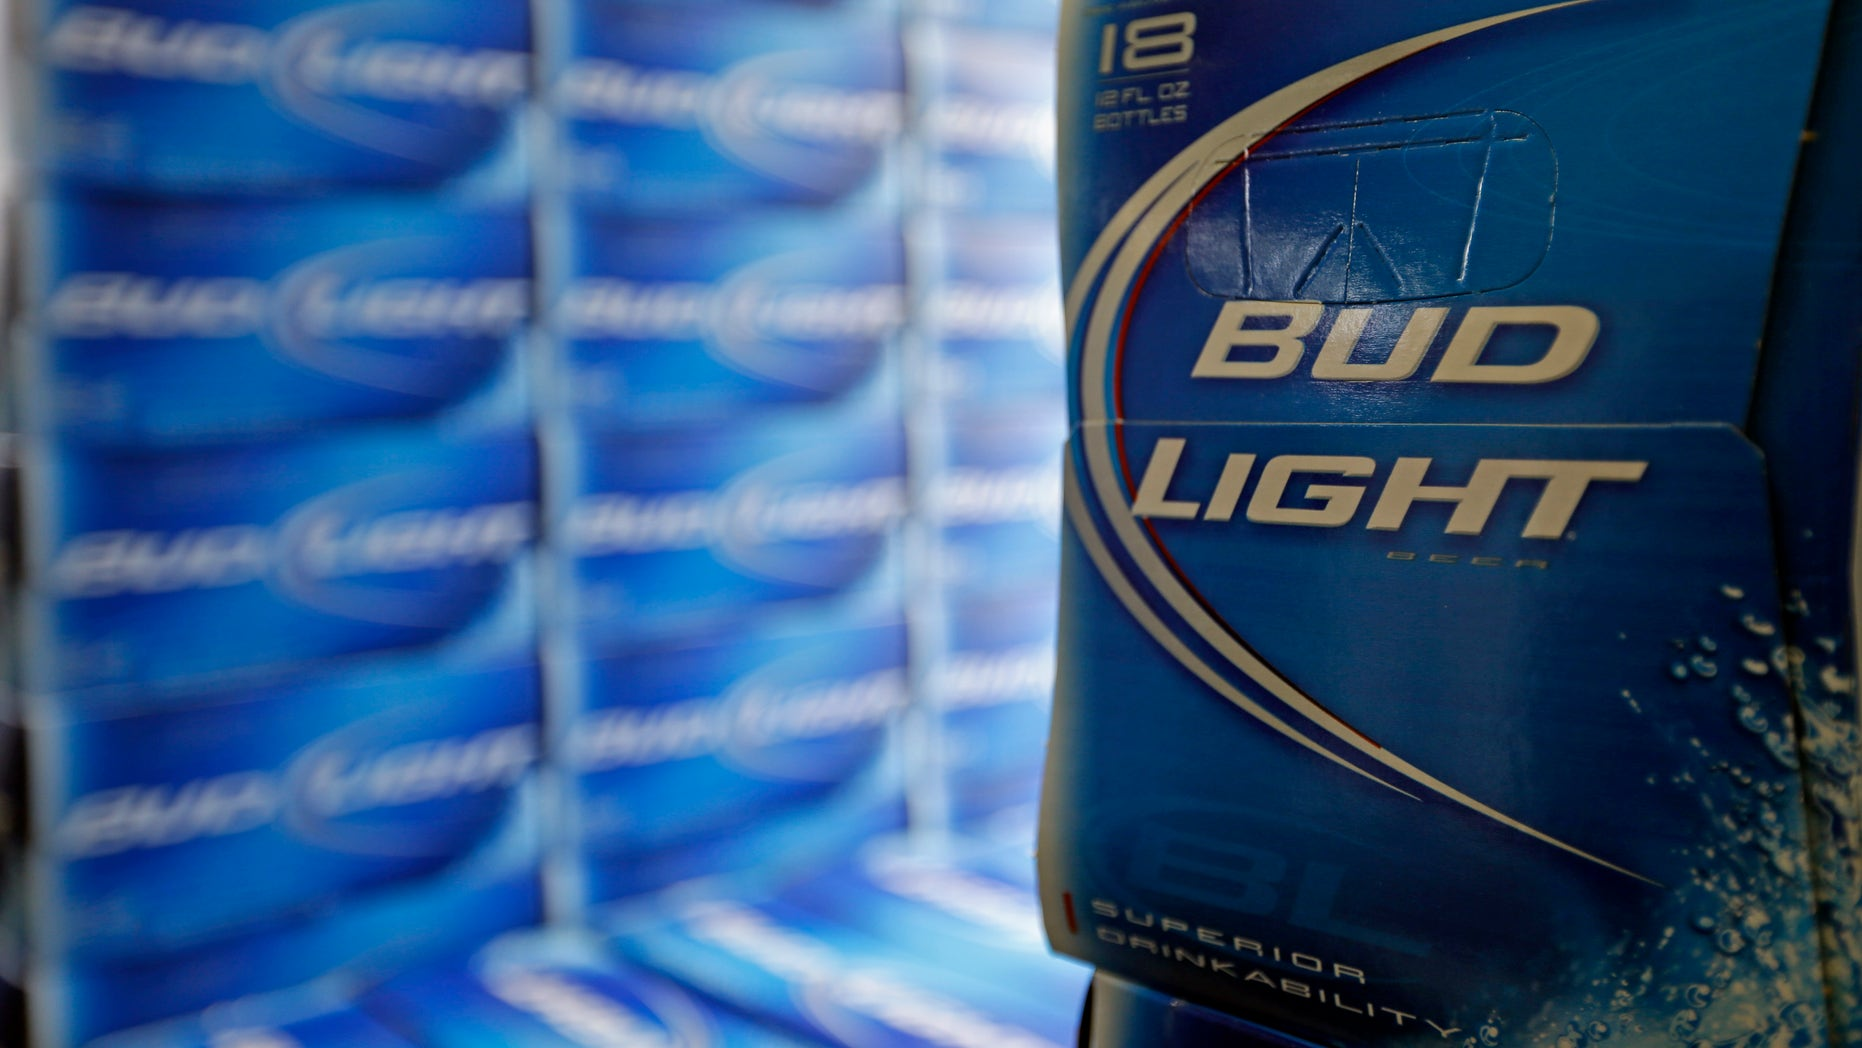 Jan. 28, 2013: File photo, Bud Light beer is shown in the aisles of Elite Beverages in Indianapolis. Beer lovers across the country have filed $5 million class-action lawsuits accusing Anheuser-Busch of watering down its Budweiser, Michelob and other brands.